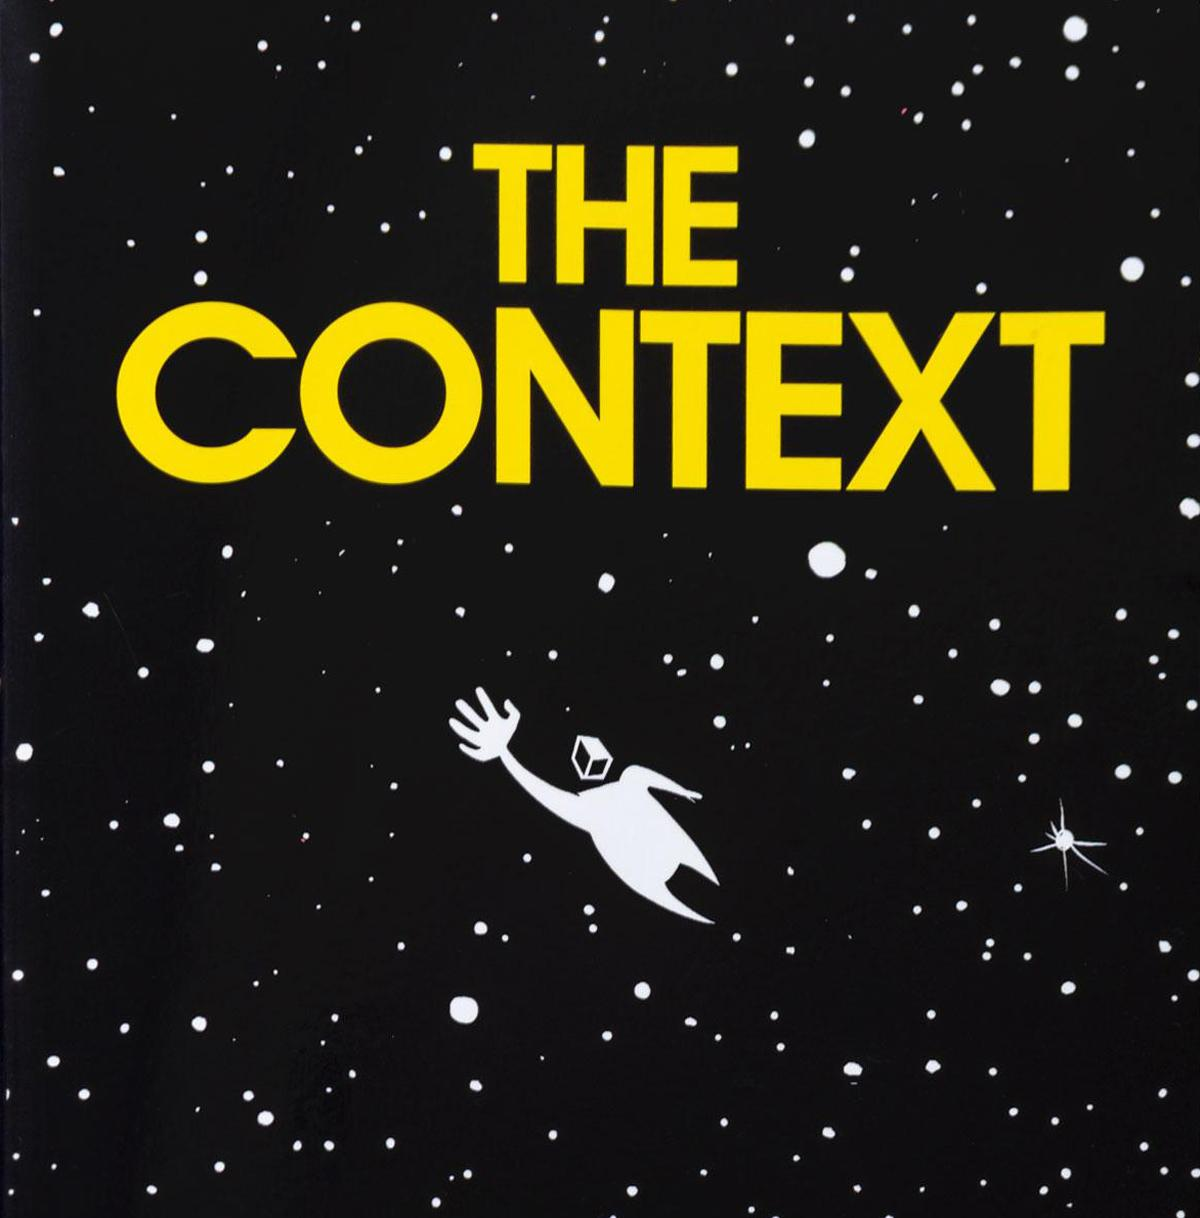 a black book cover with white dots like the galaxy and a person with the title of the book in yellow